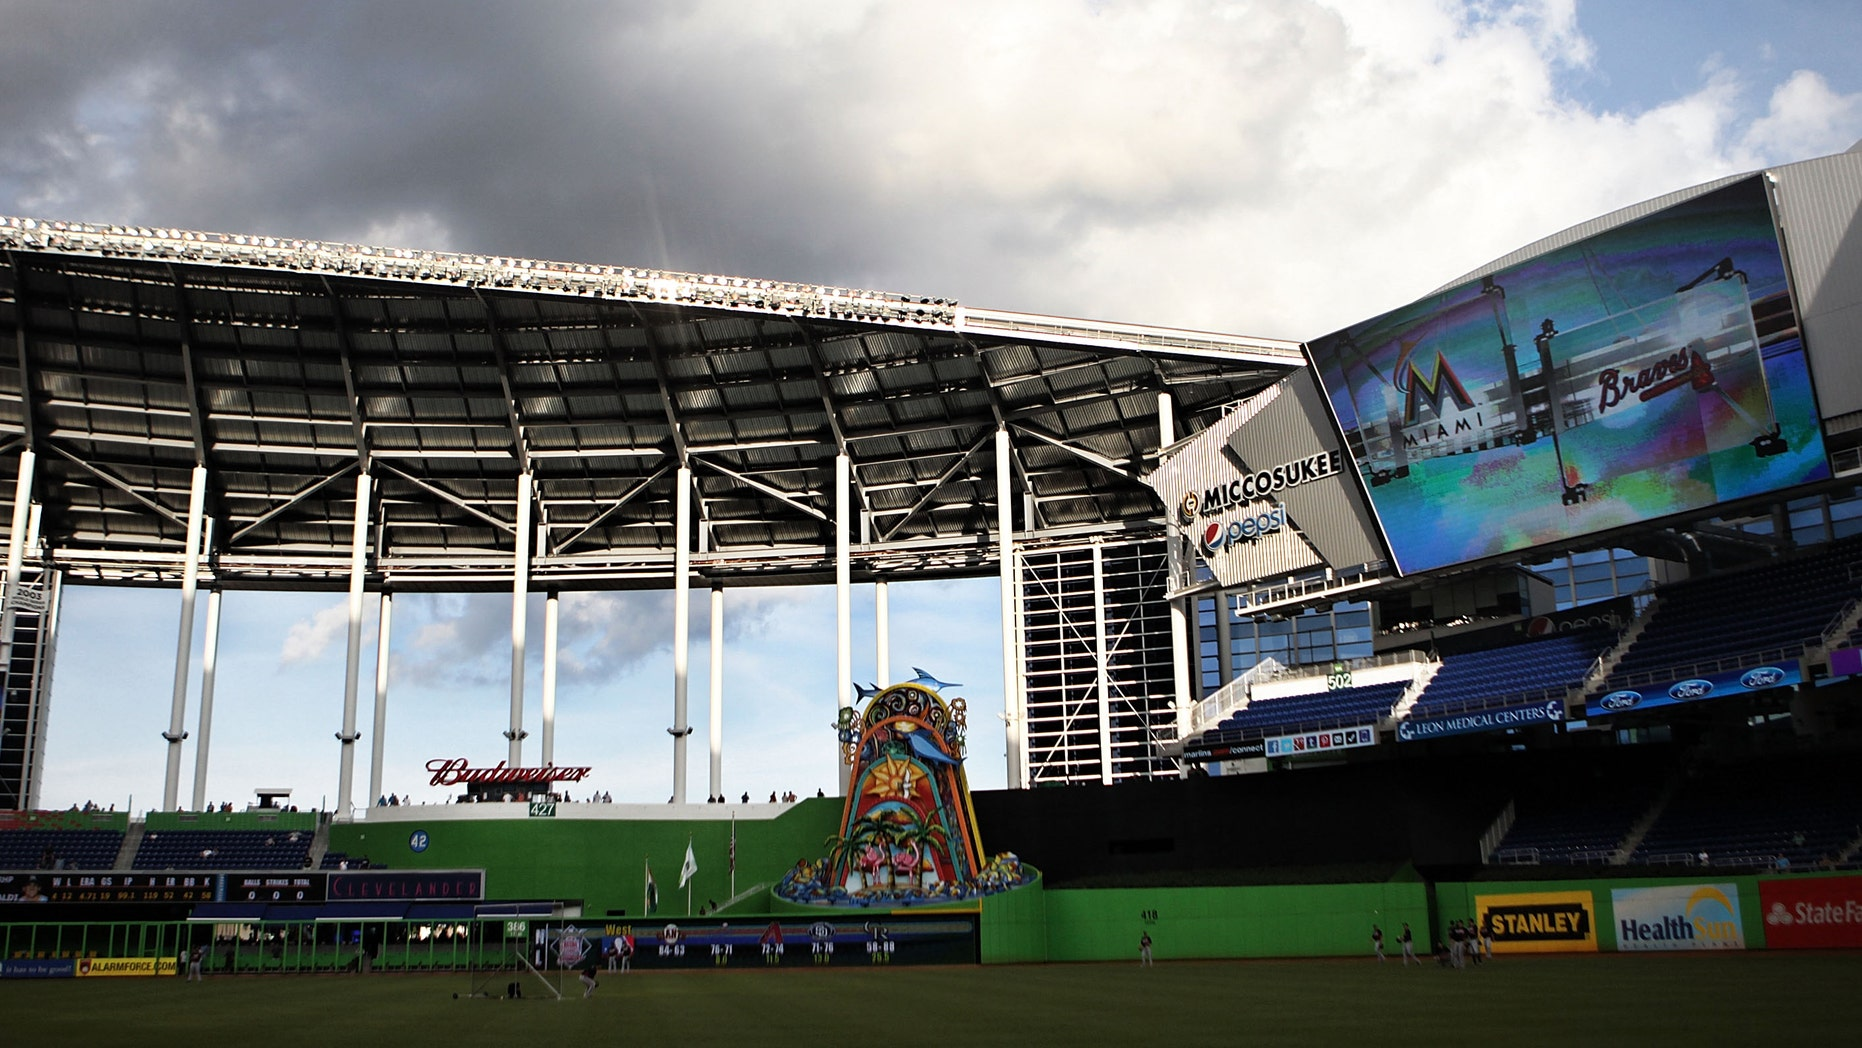 MIAMI, FL - SEPTEMBER 18:  A general view of the park with the roof open as the Atlanta Braves prepare against the Miami Marlins by taking batting practice at Marlins Park on September 18, 2012 in Miami, Florida.  (Photo by Marc Serota/Getty Images)